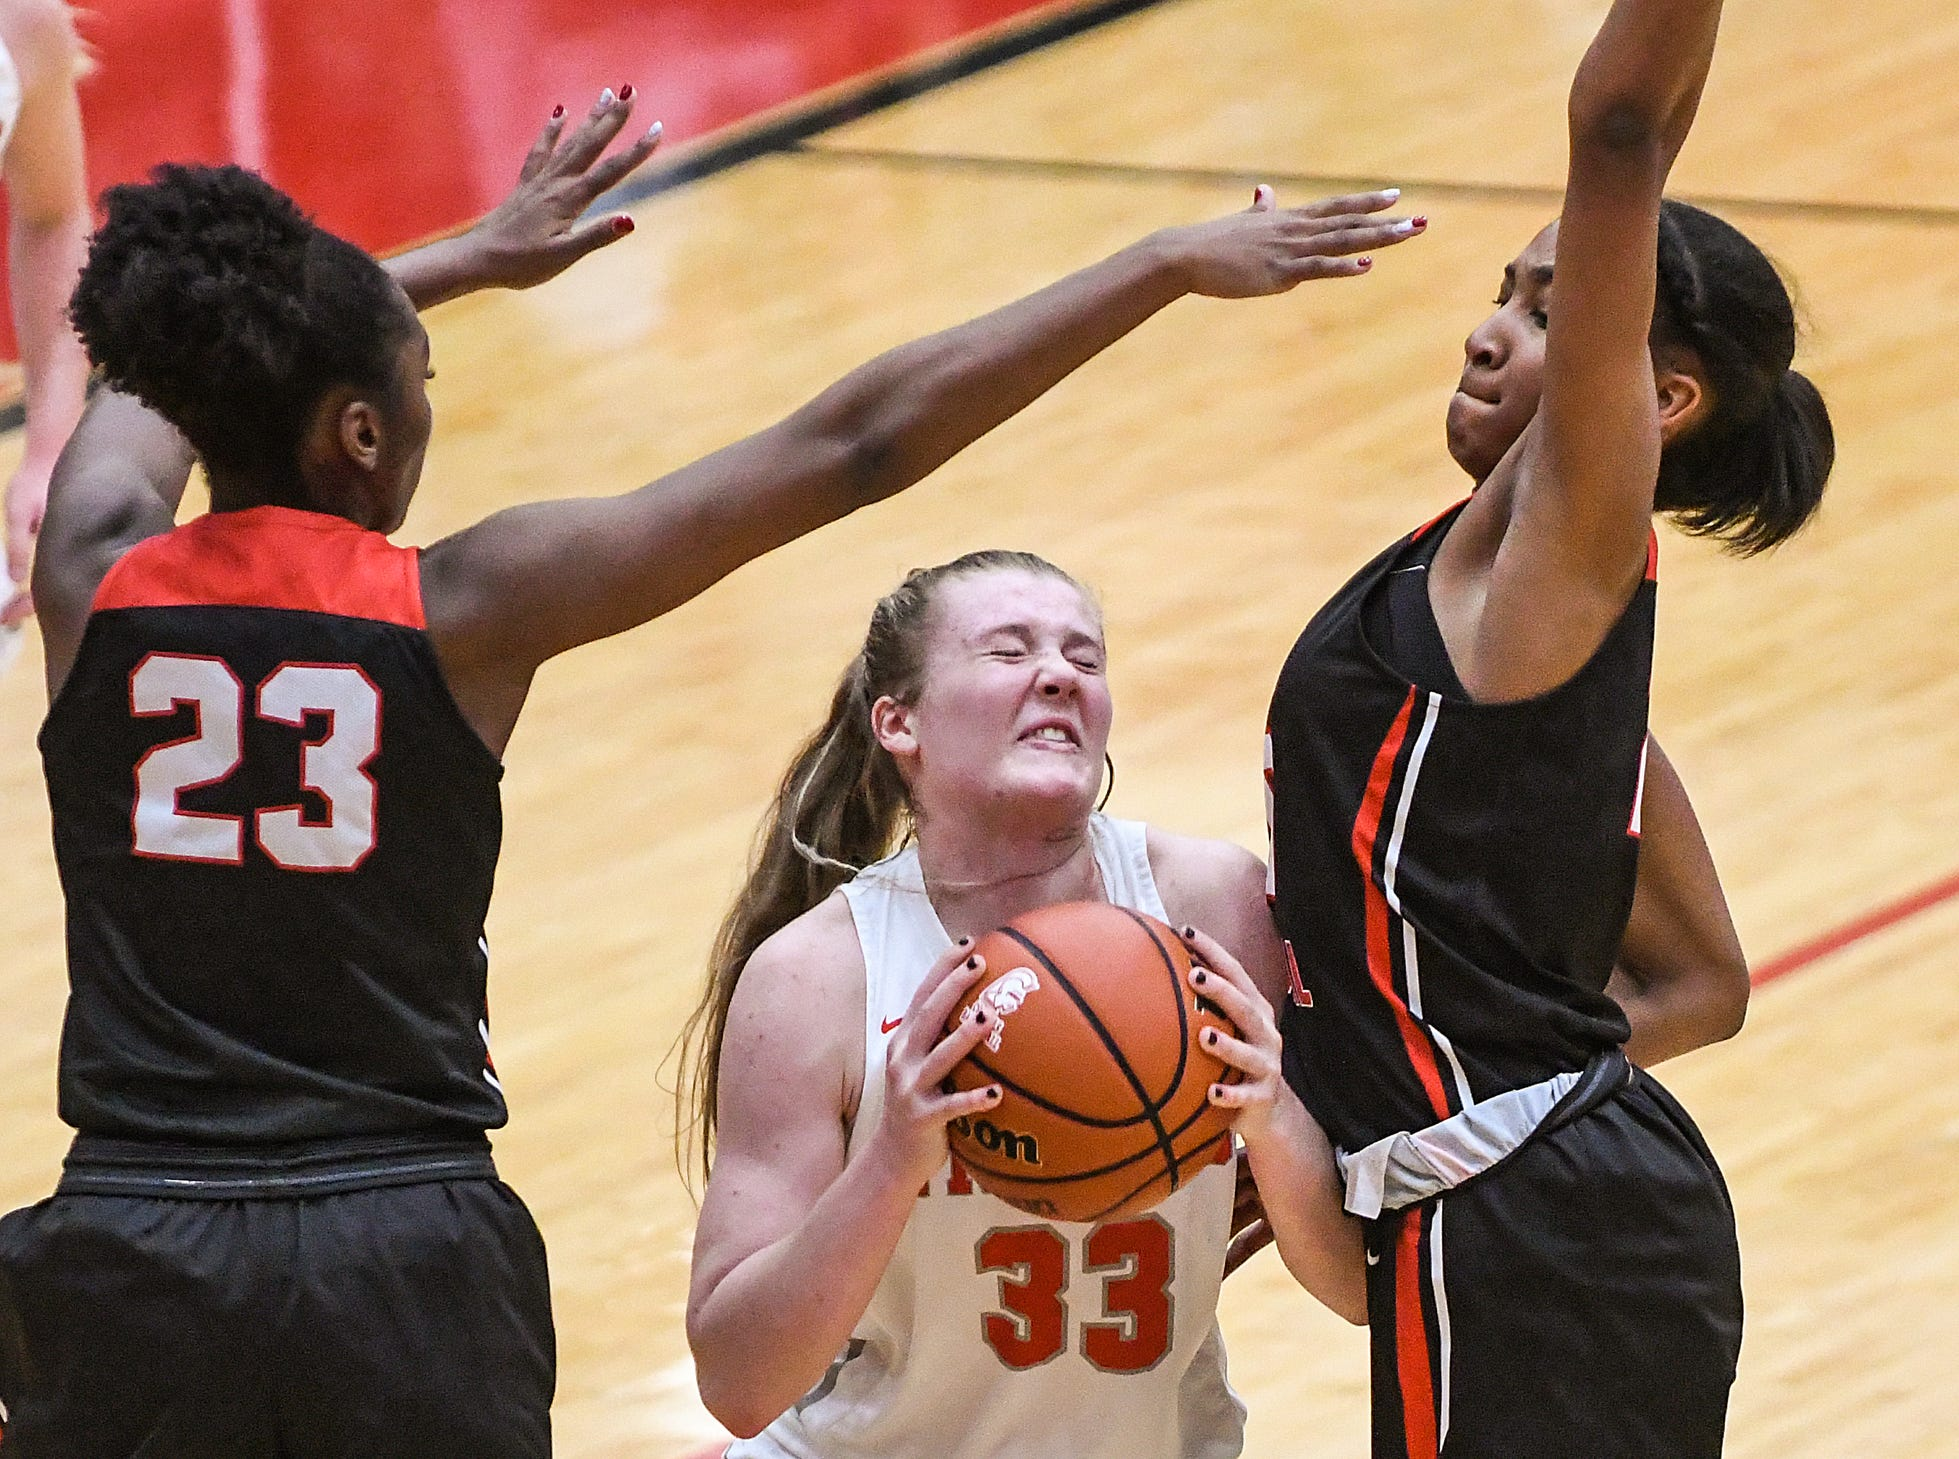 Center Grove Trojans guard Mary Wilson (33) drives up to the basket in the second half of the game at Center Grove High School in Greenwood, Ind., Thursday, Jan. 10, 2019. Center Grove defeated North Central, 51-44.